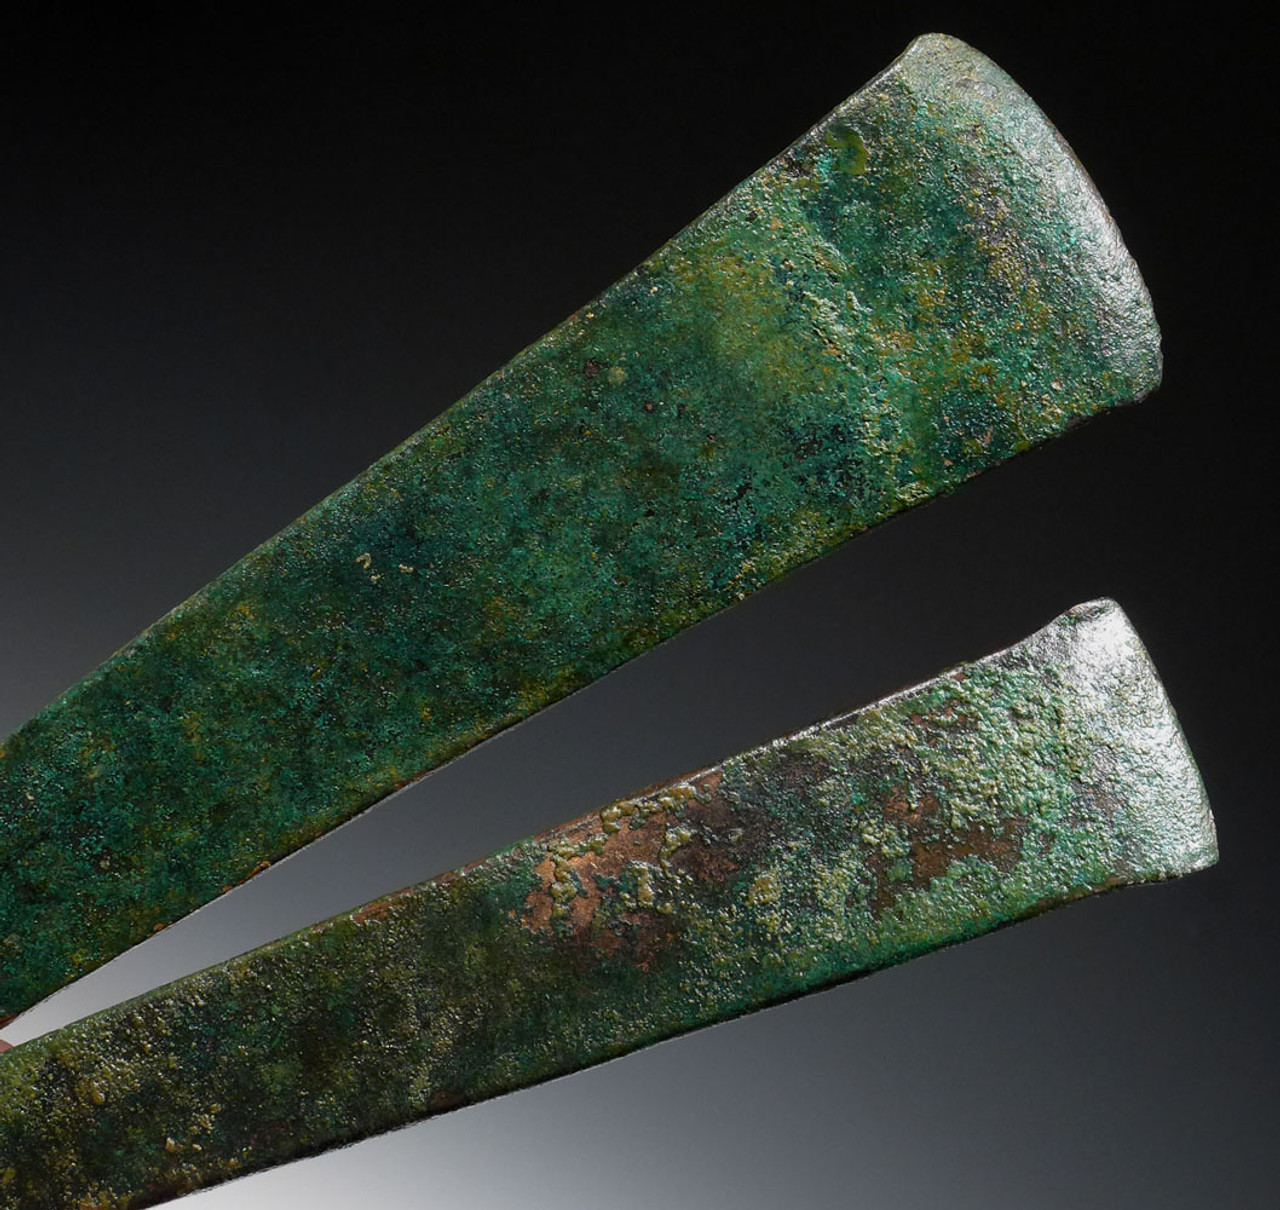 TWO ANCIENT BRONZE CHISEL ADZE AXE BLADES OF THE NEAR EASTERN LURISTAN BRONZE AGE CULTURE *NEPC008